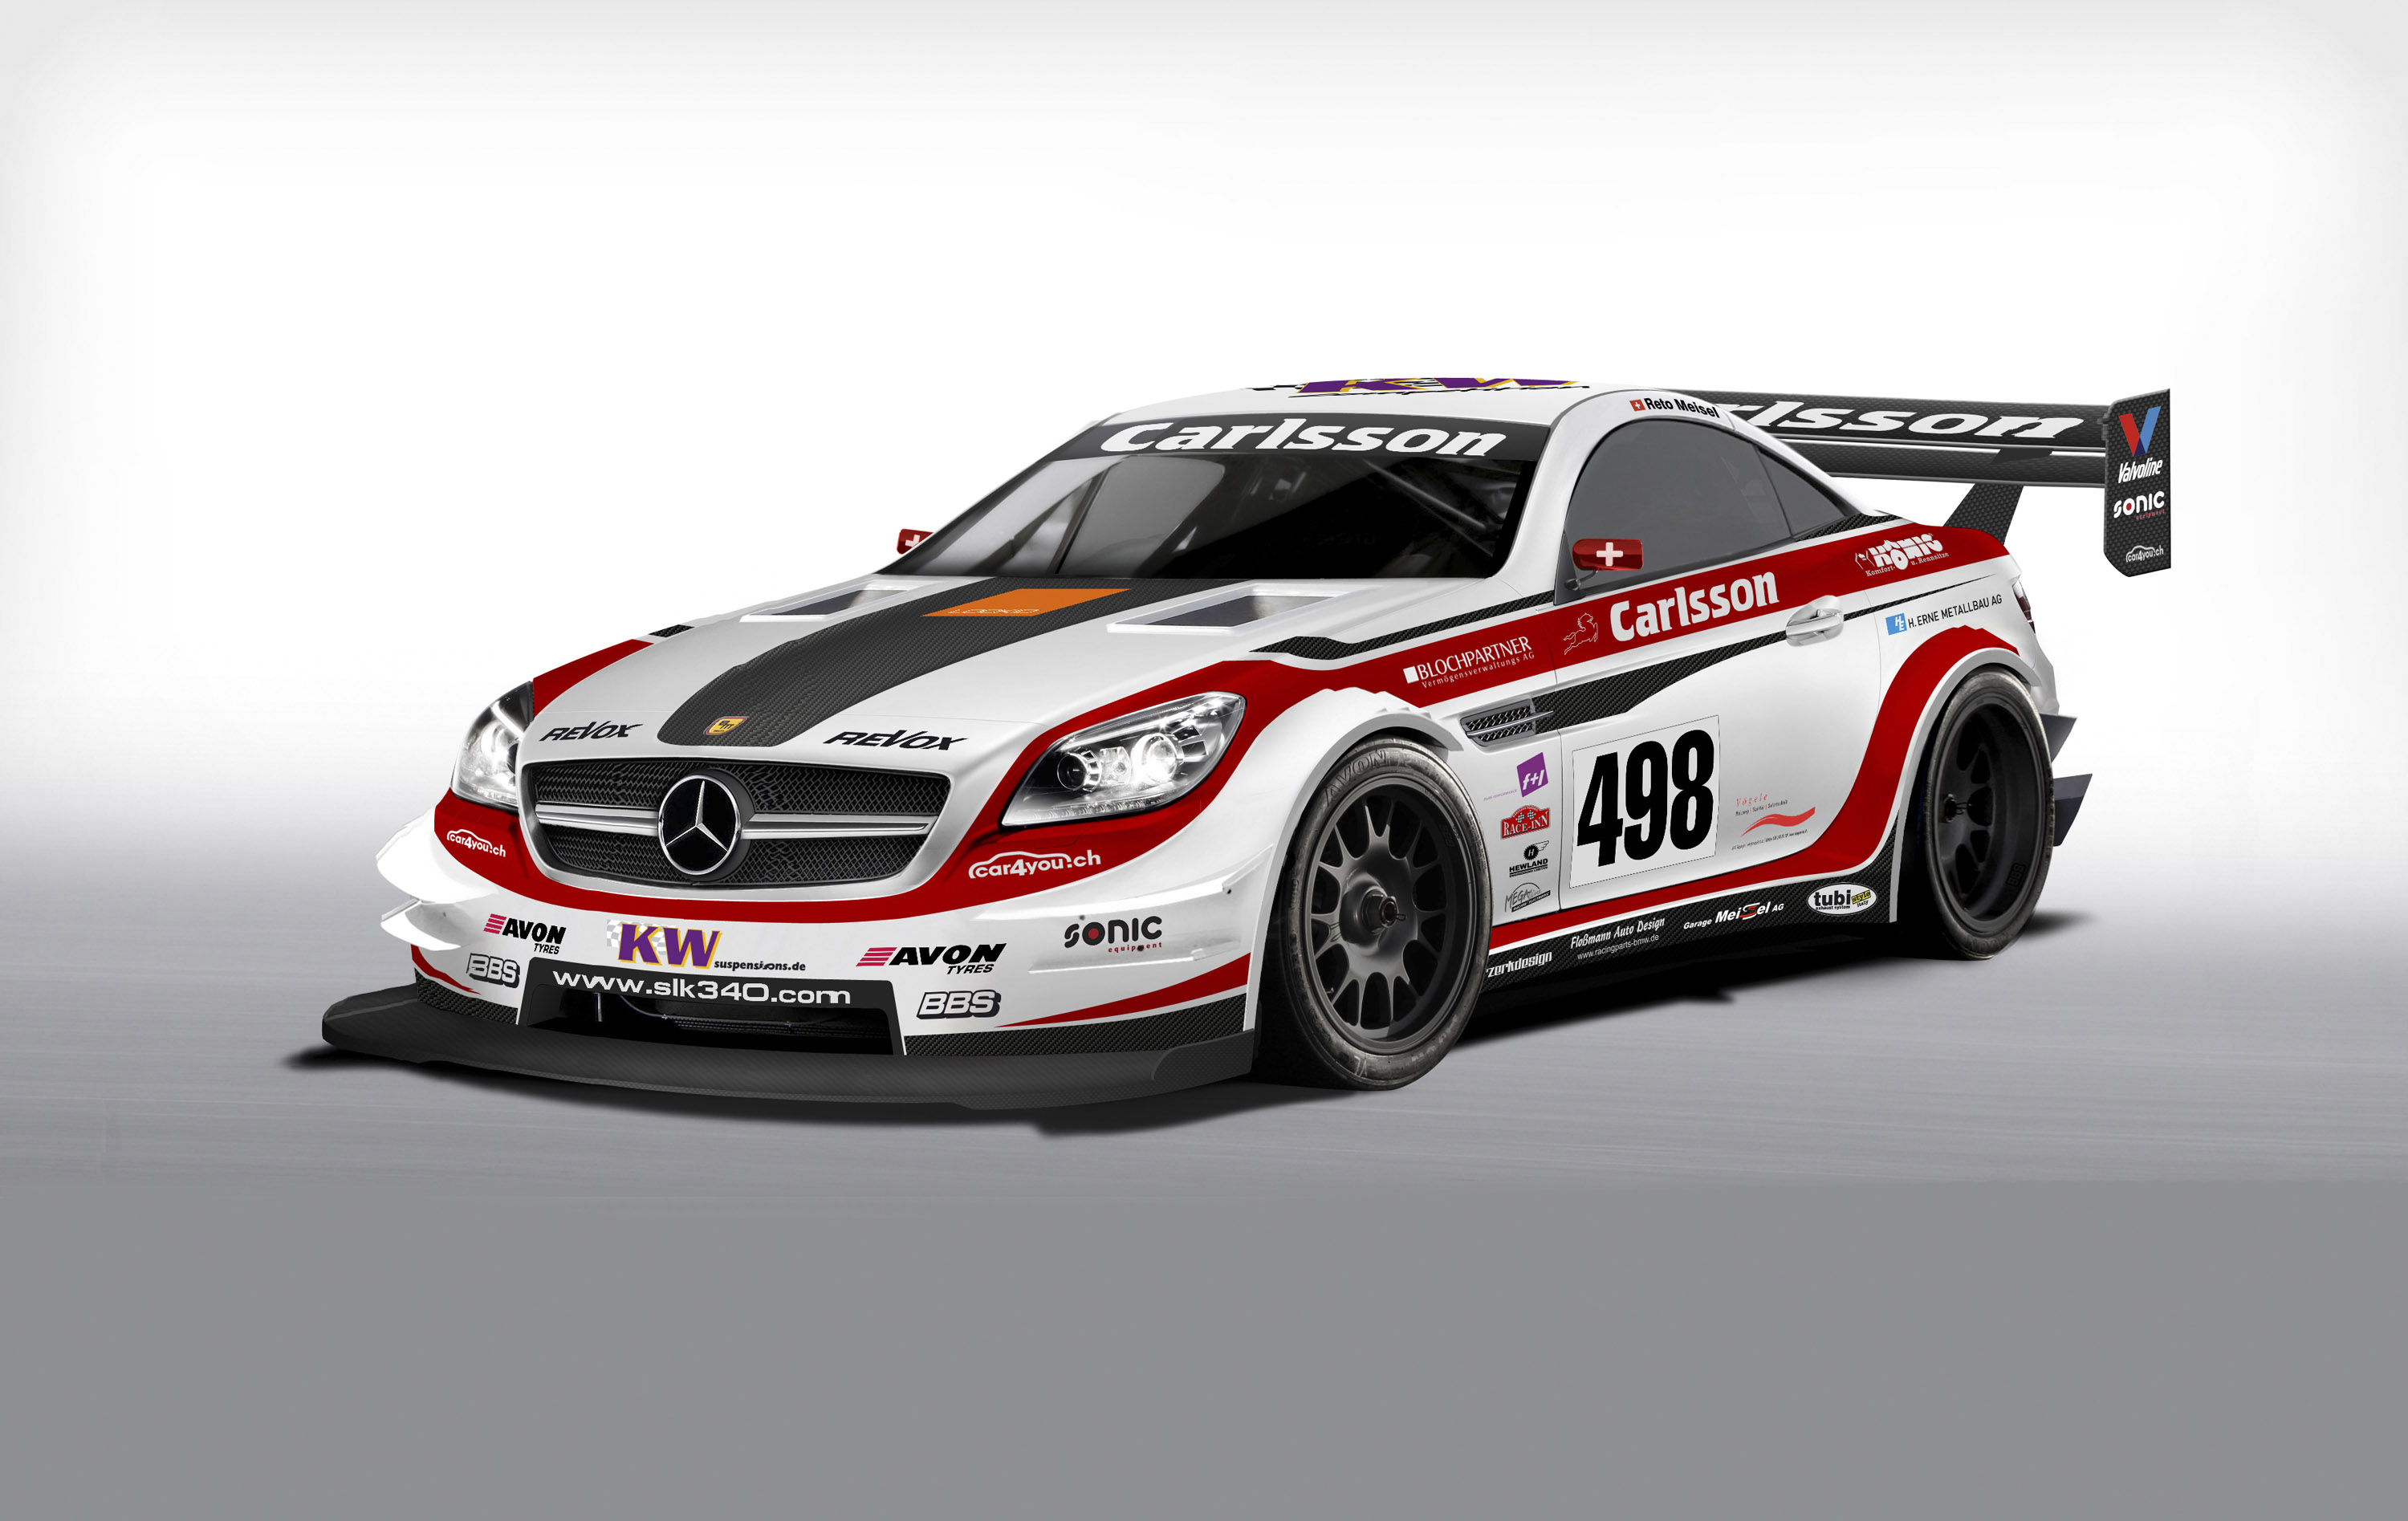 carlsson mercedesbenz slk 340 race car revealed in geneva